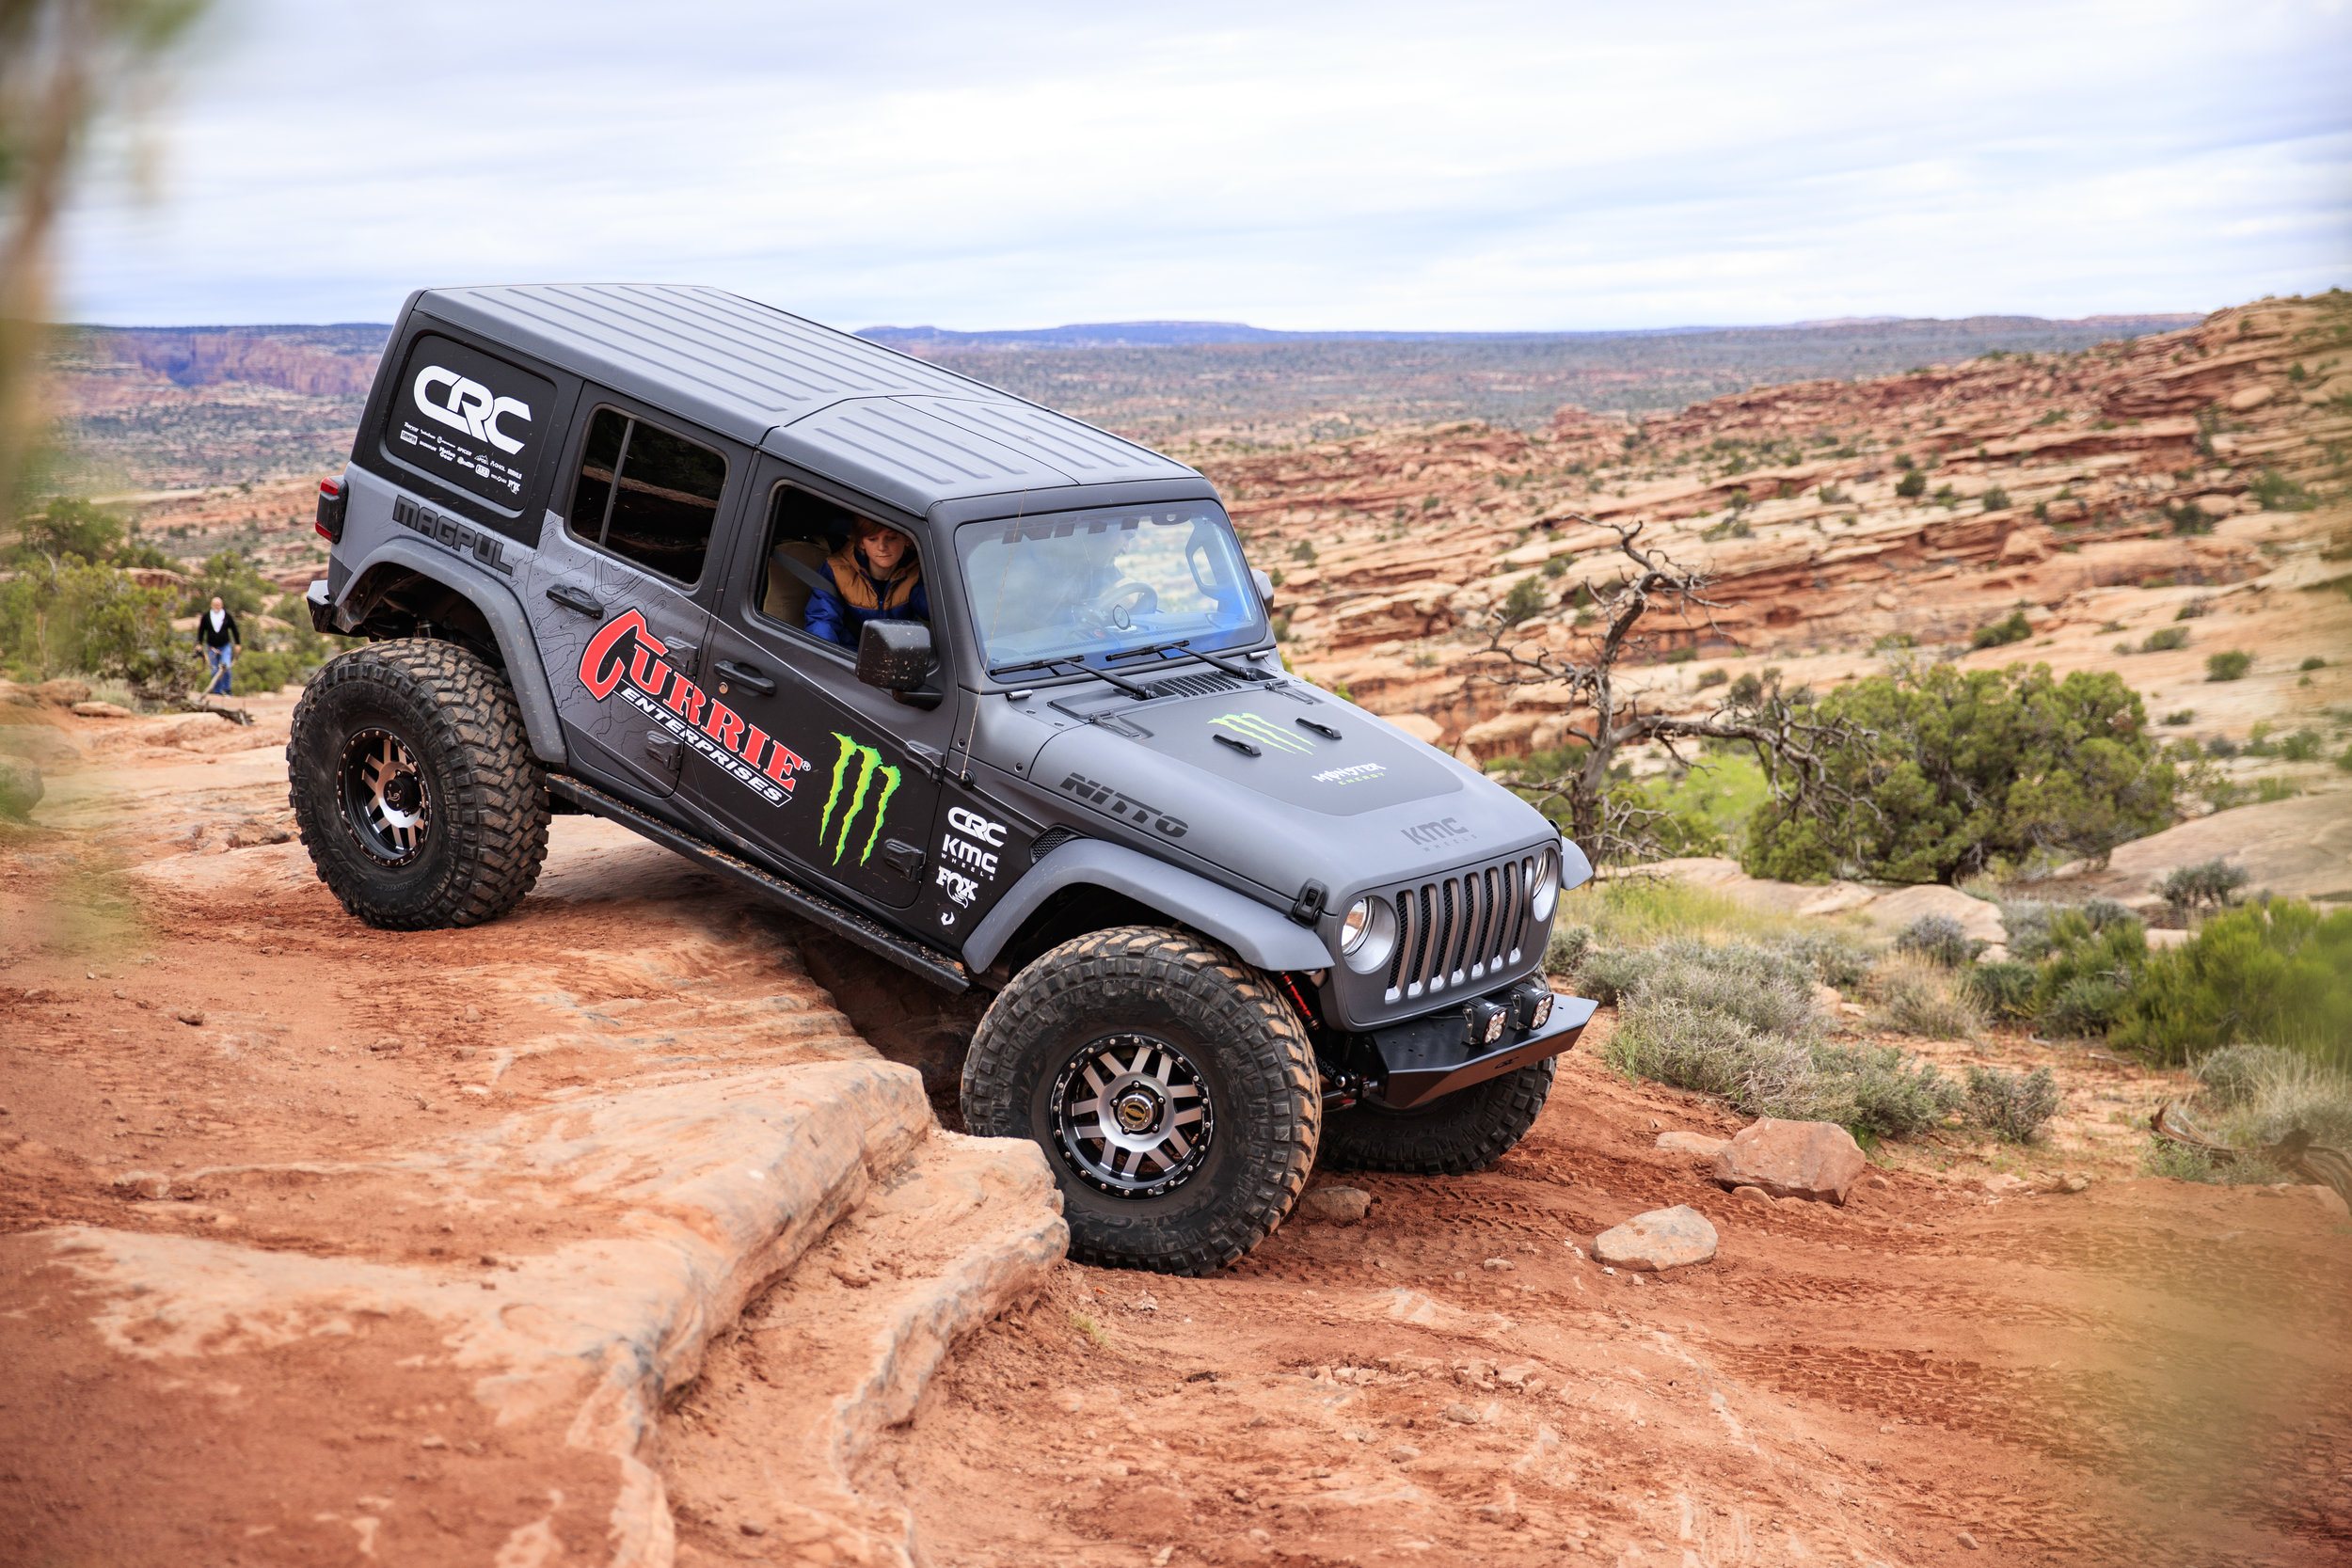 4_17_CaseyCurrie_MonsterCurrieJeepJL_MoabEJS_GoldBarRim_005.jpg